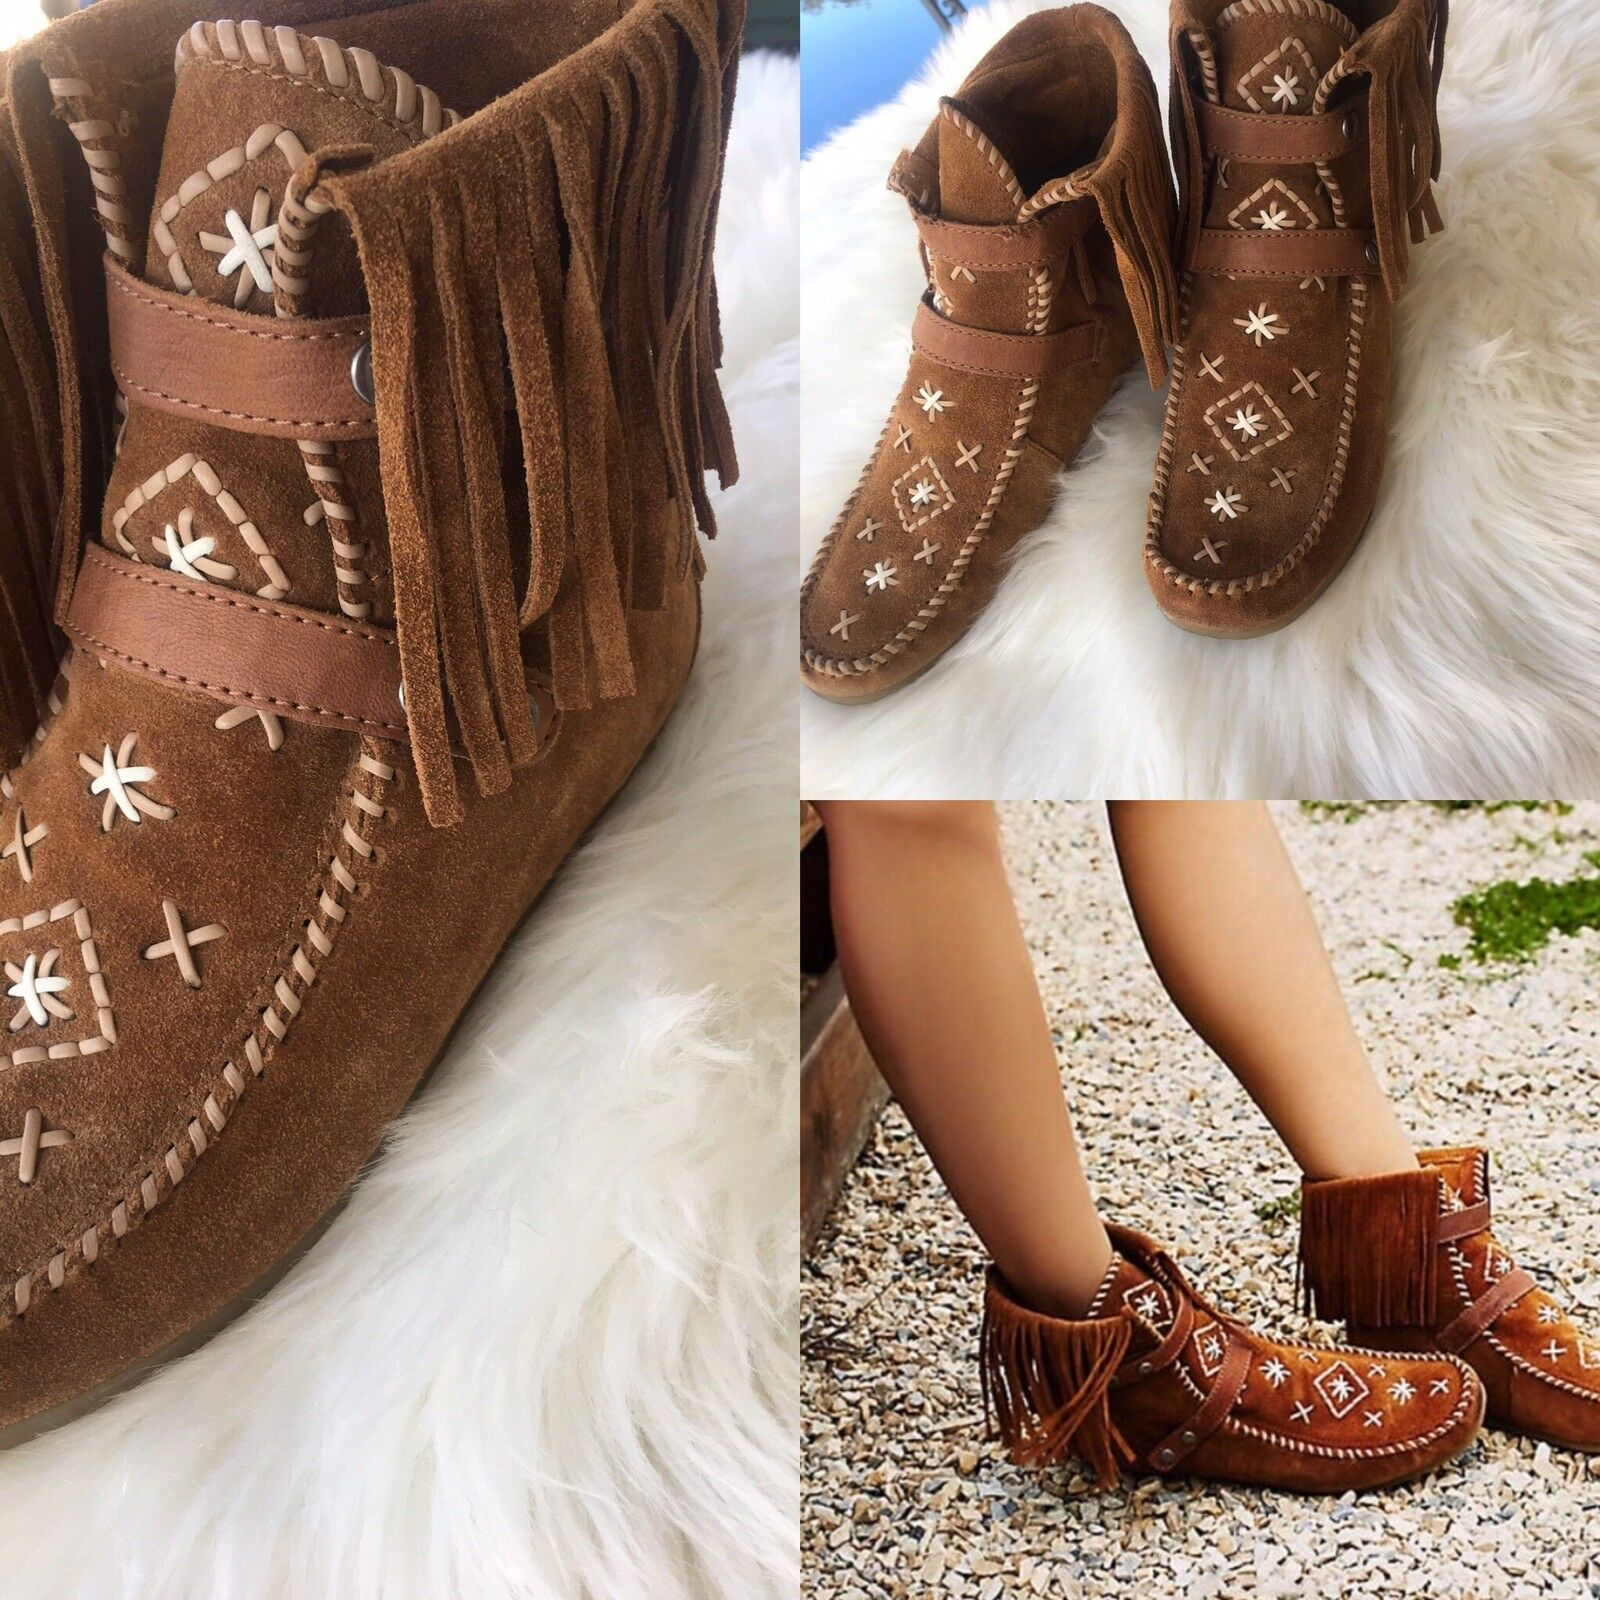 Sam edelman brown leather Khaterine  booties Zs 6